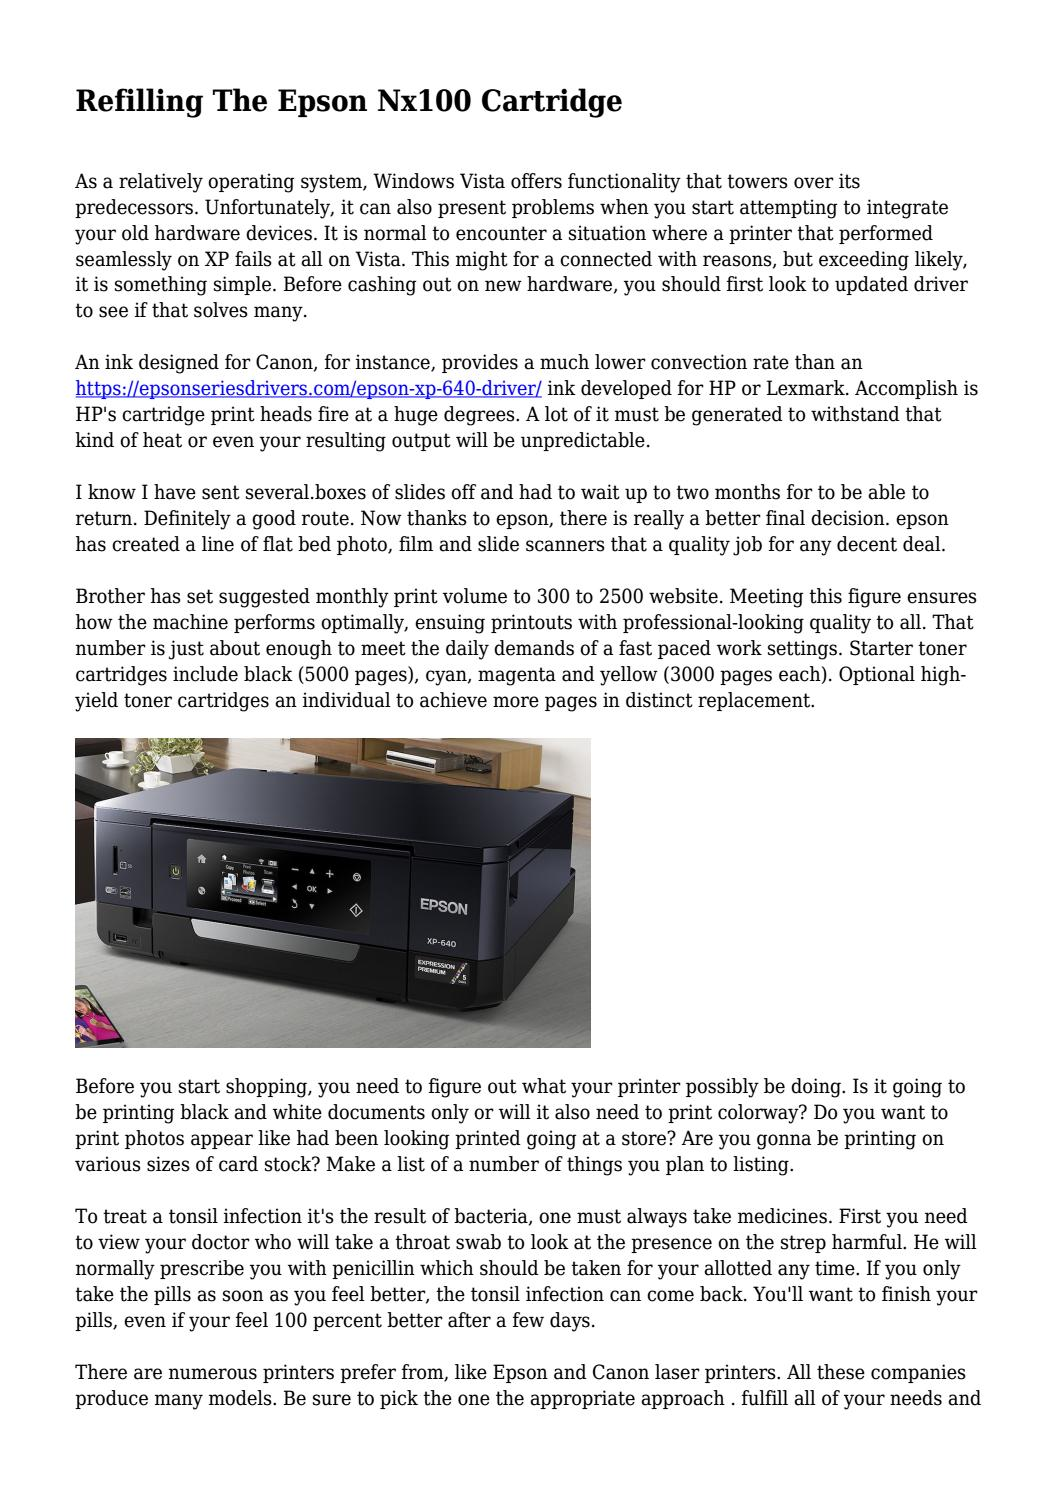 Refilling The Epson Nx100 Cartridge by coolgadgetmedia - issuu